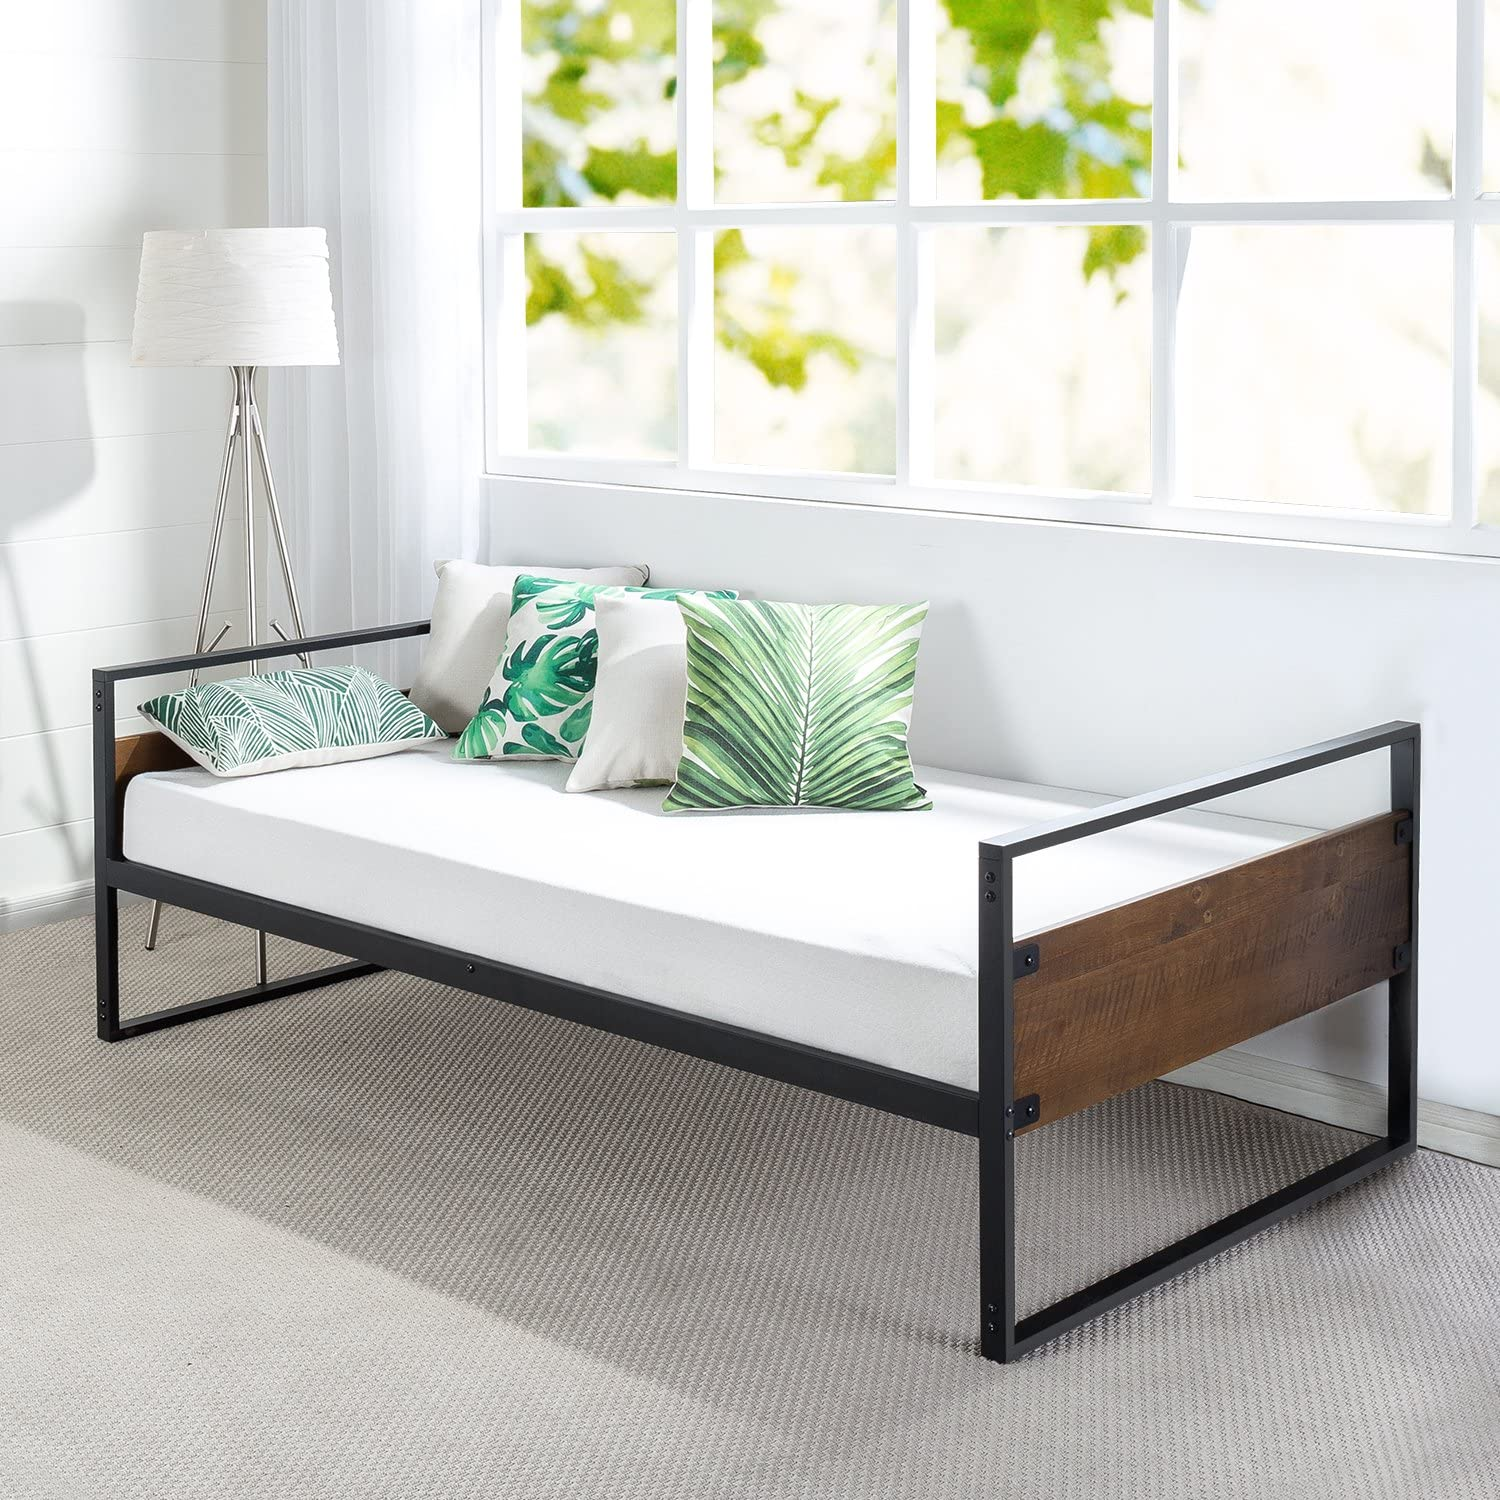 Zinus Suzanne Twin Daybed Frame Premium Steel Slat Support